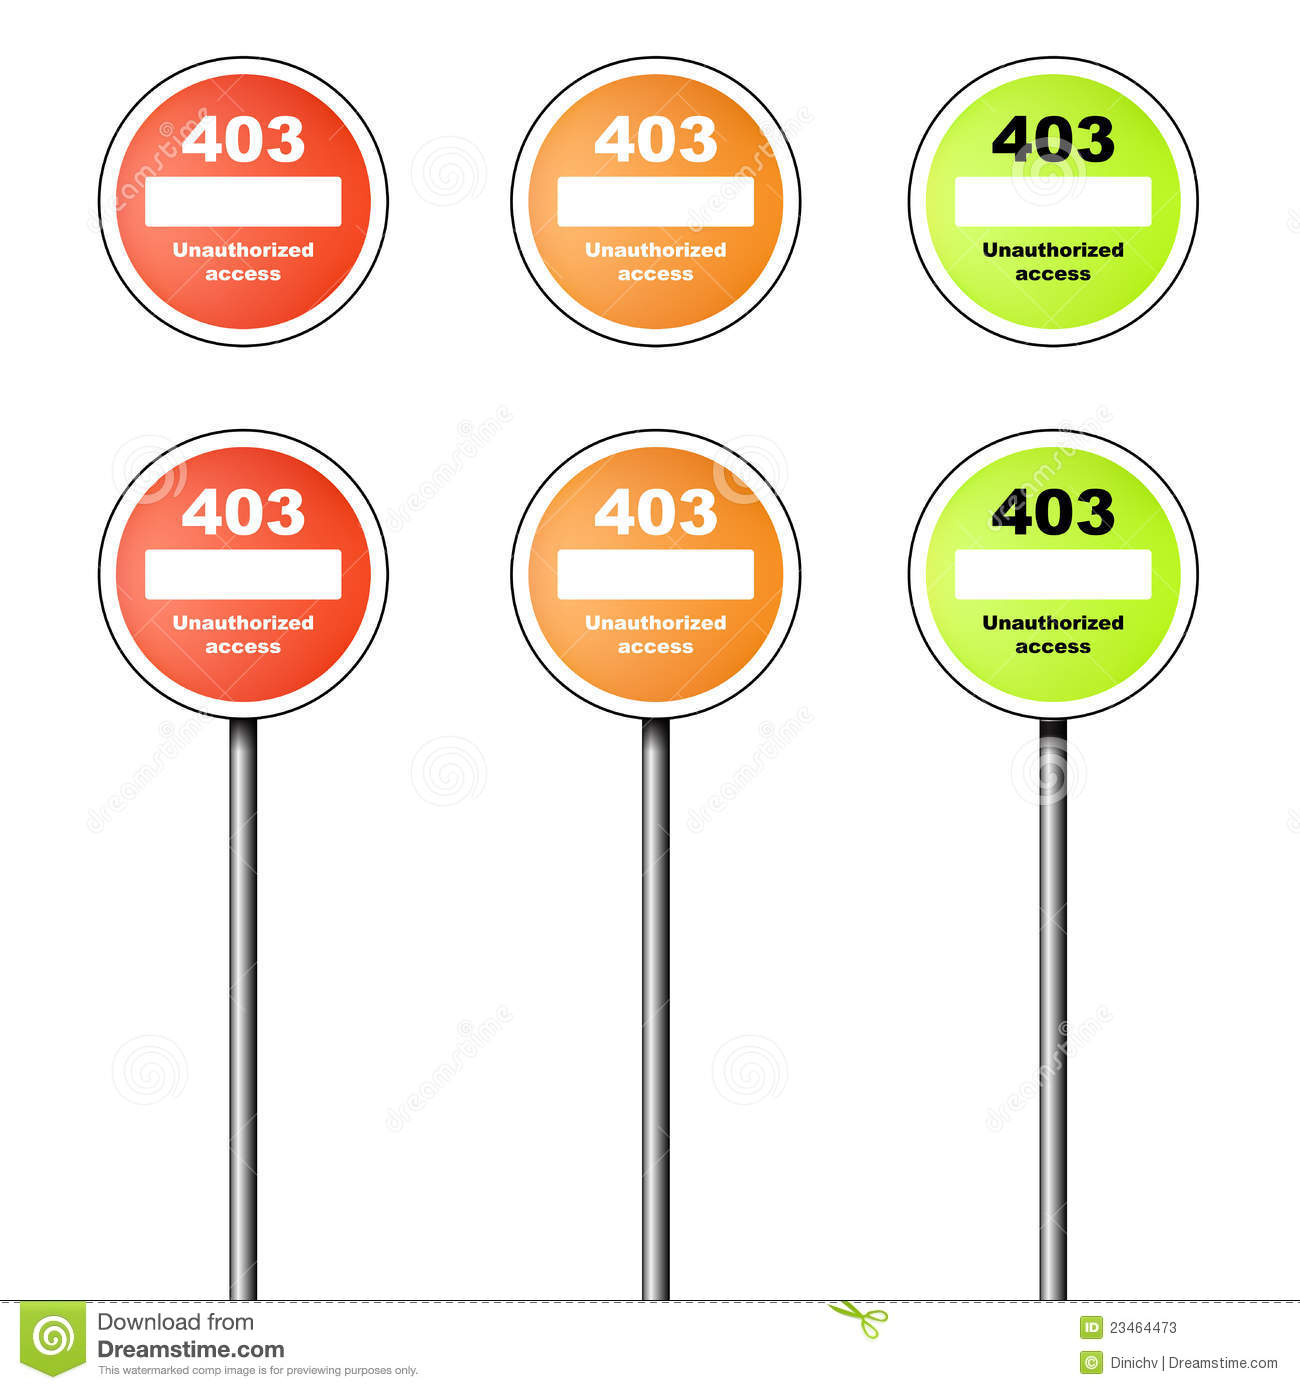 403 Forbidden: Error 403 Icon And Sign Cartoon Vector